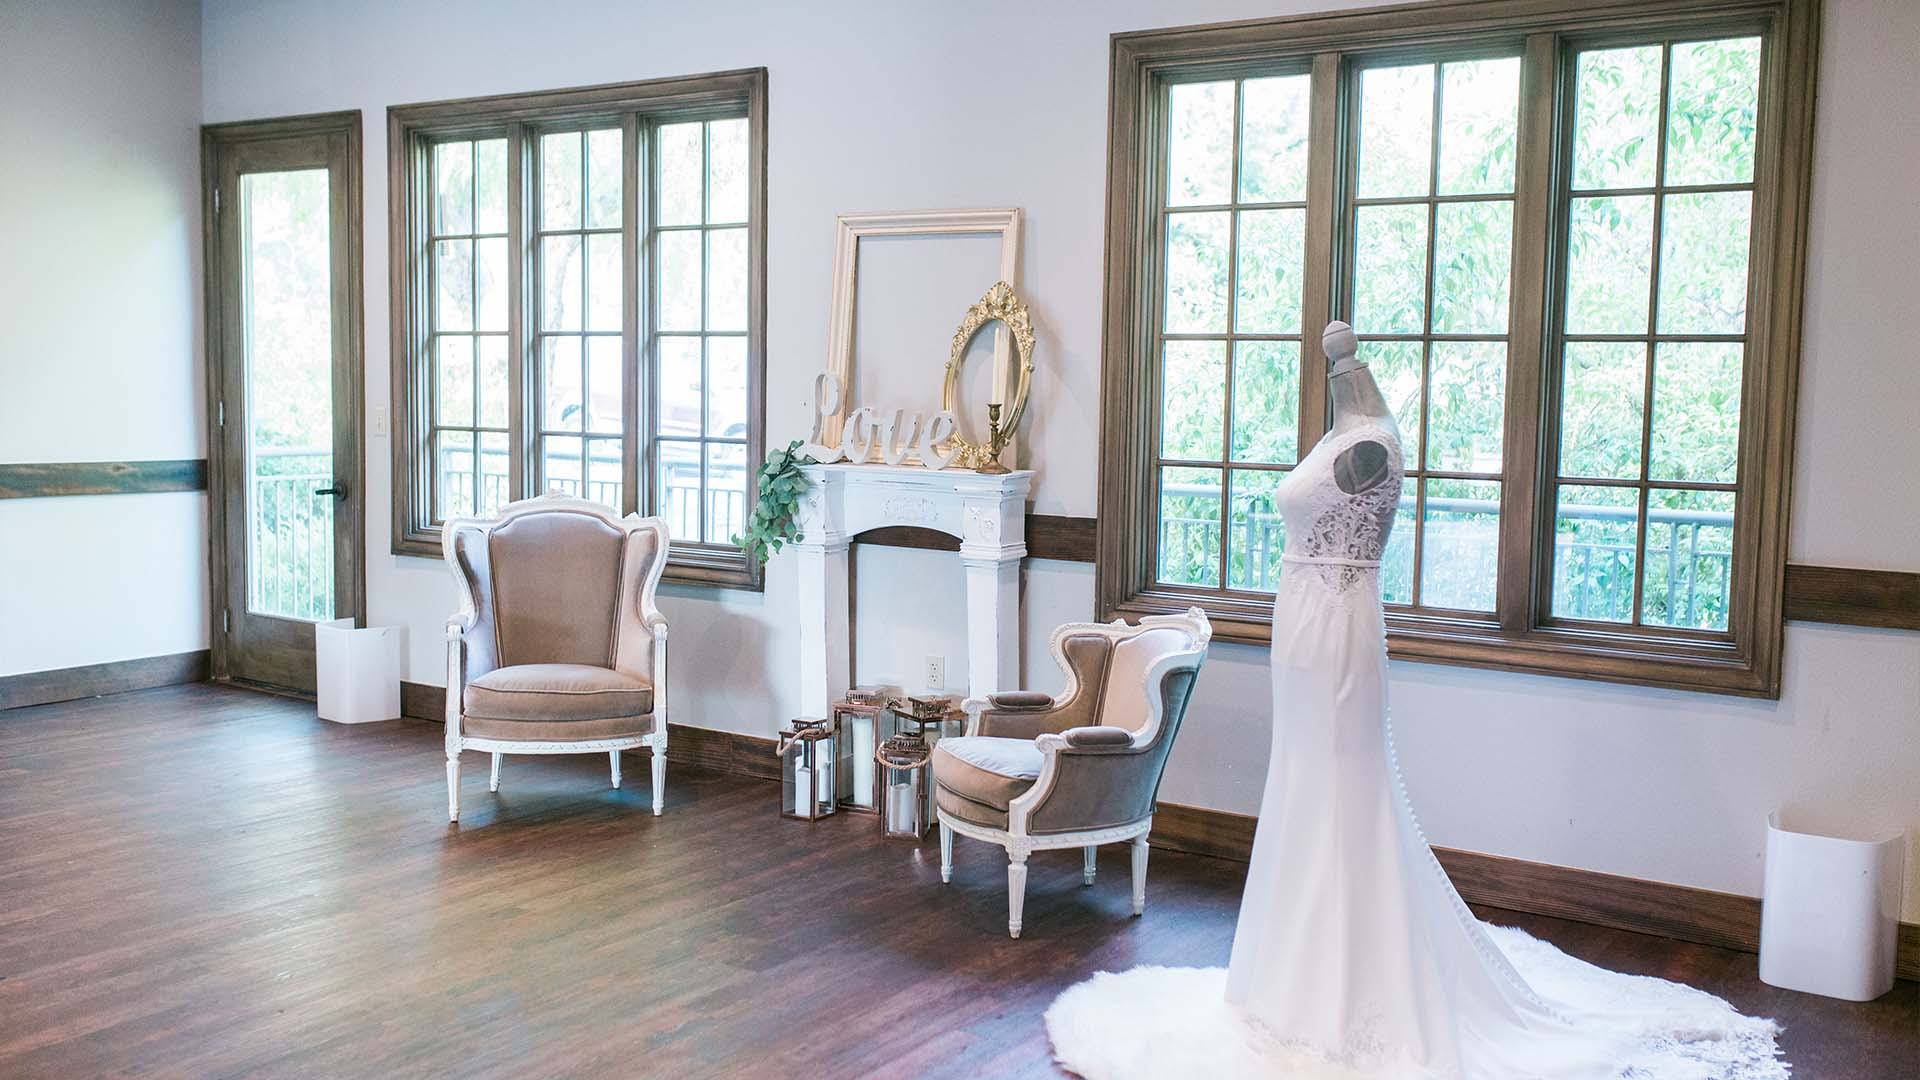 The bride's dressing room awaits its bride at Hiddenbrooke Golf Club in Vallejo